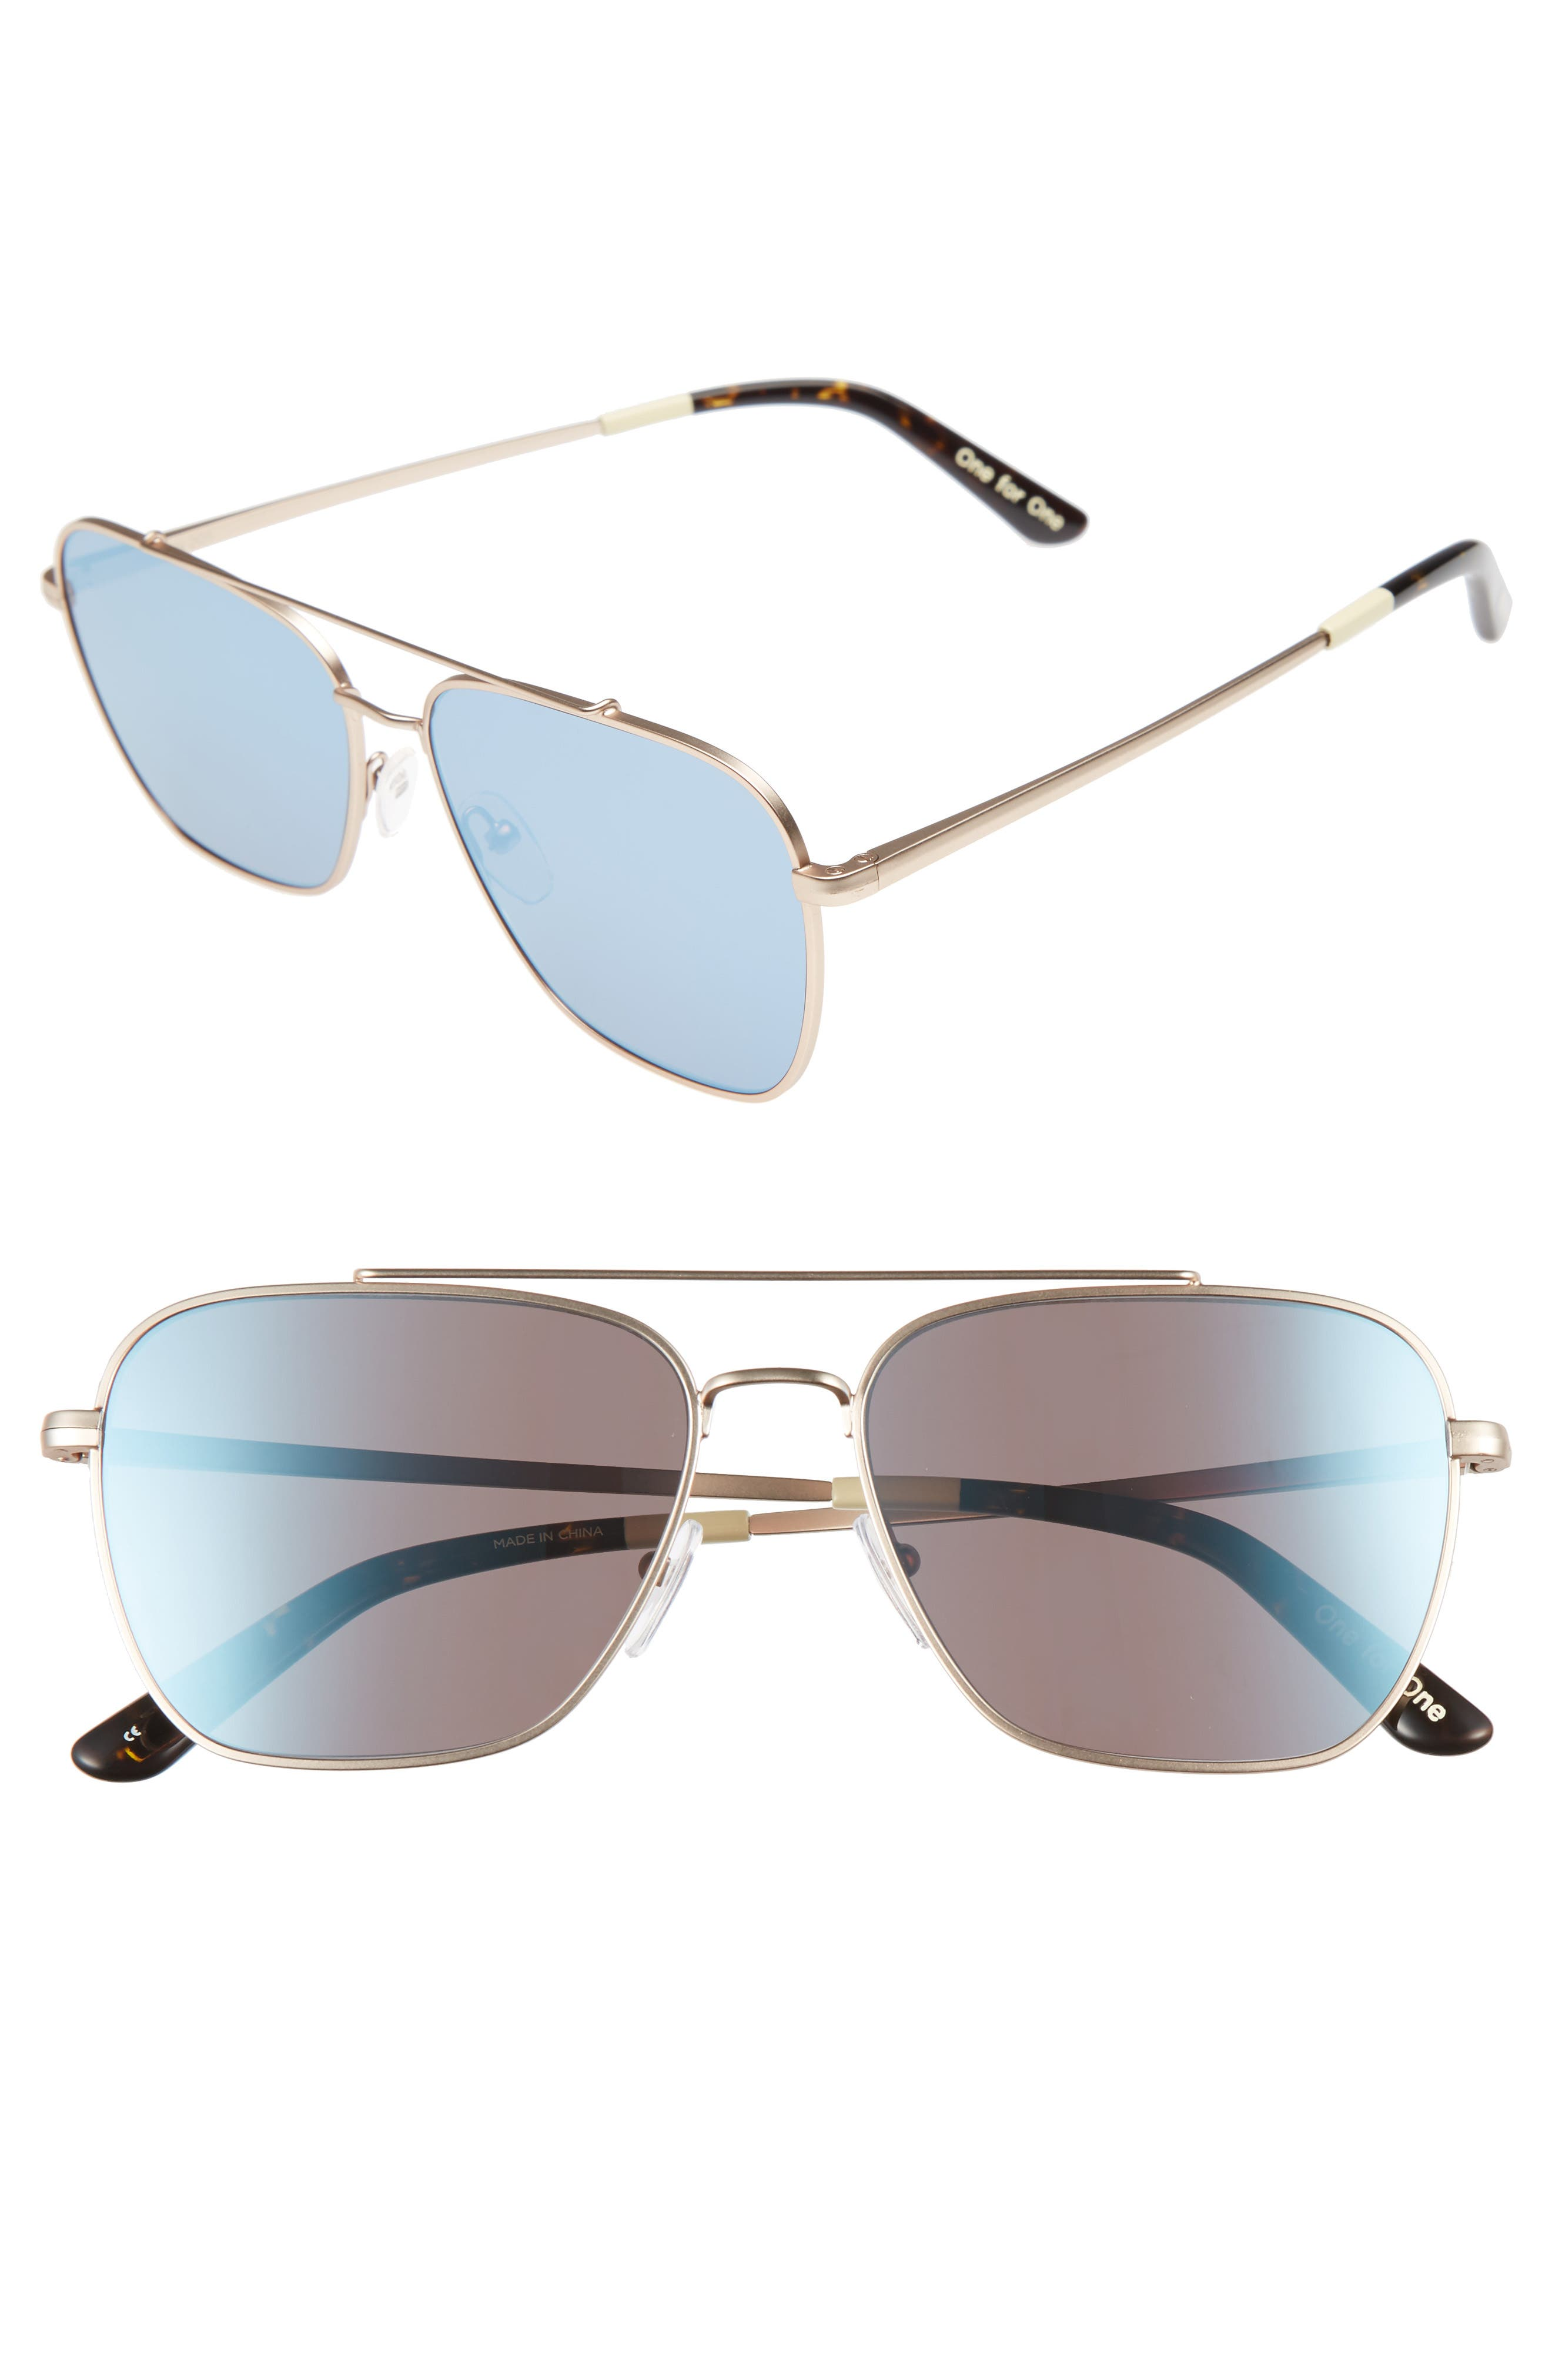 TOMS Irwin 58mm Aviator Sunglasses